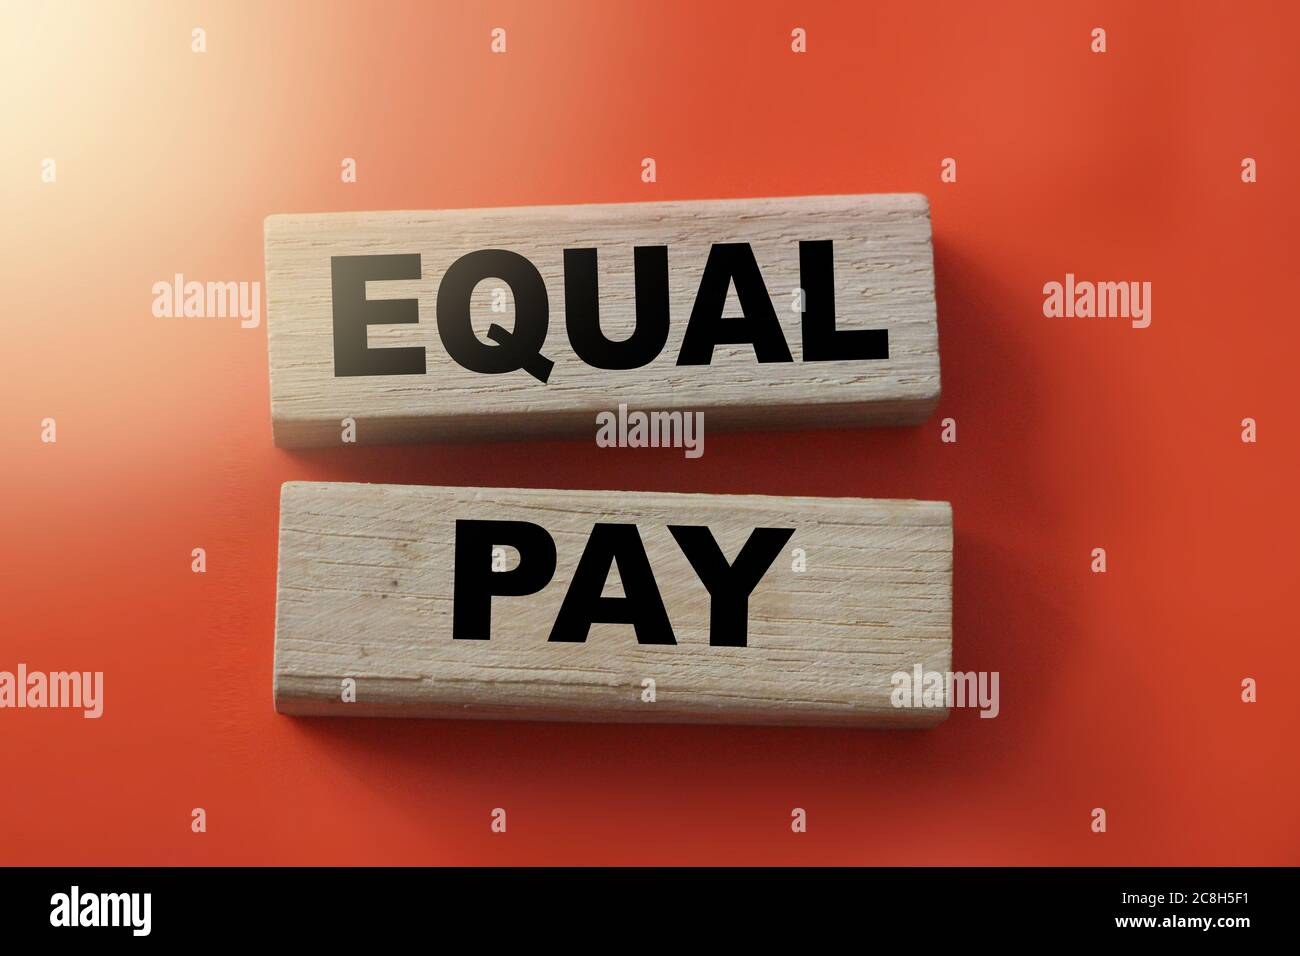 Equal pay words on wooden blocks. No Income differences concept Stock Photo